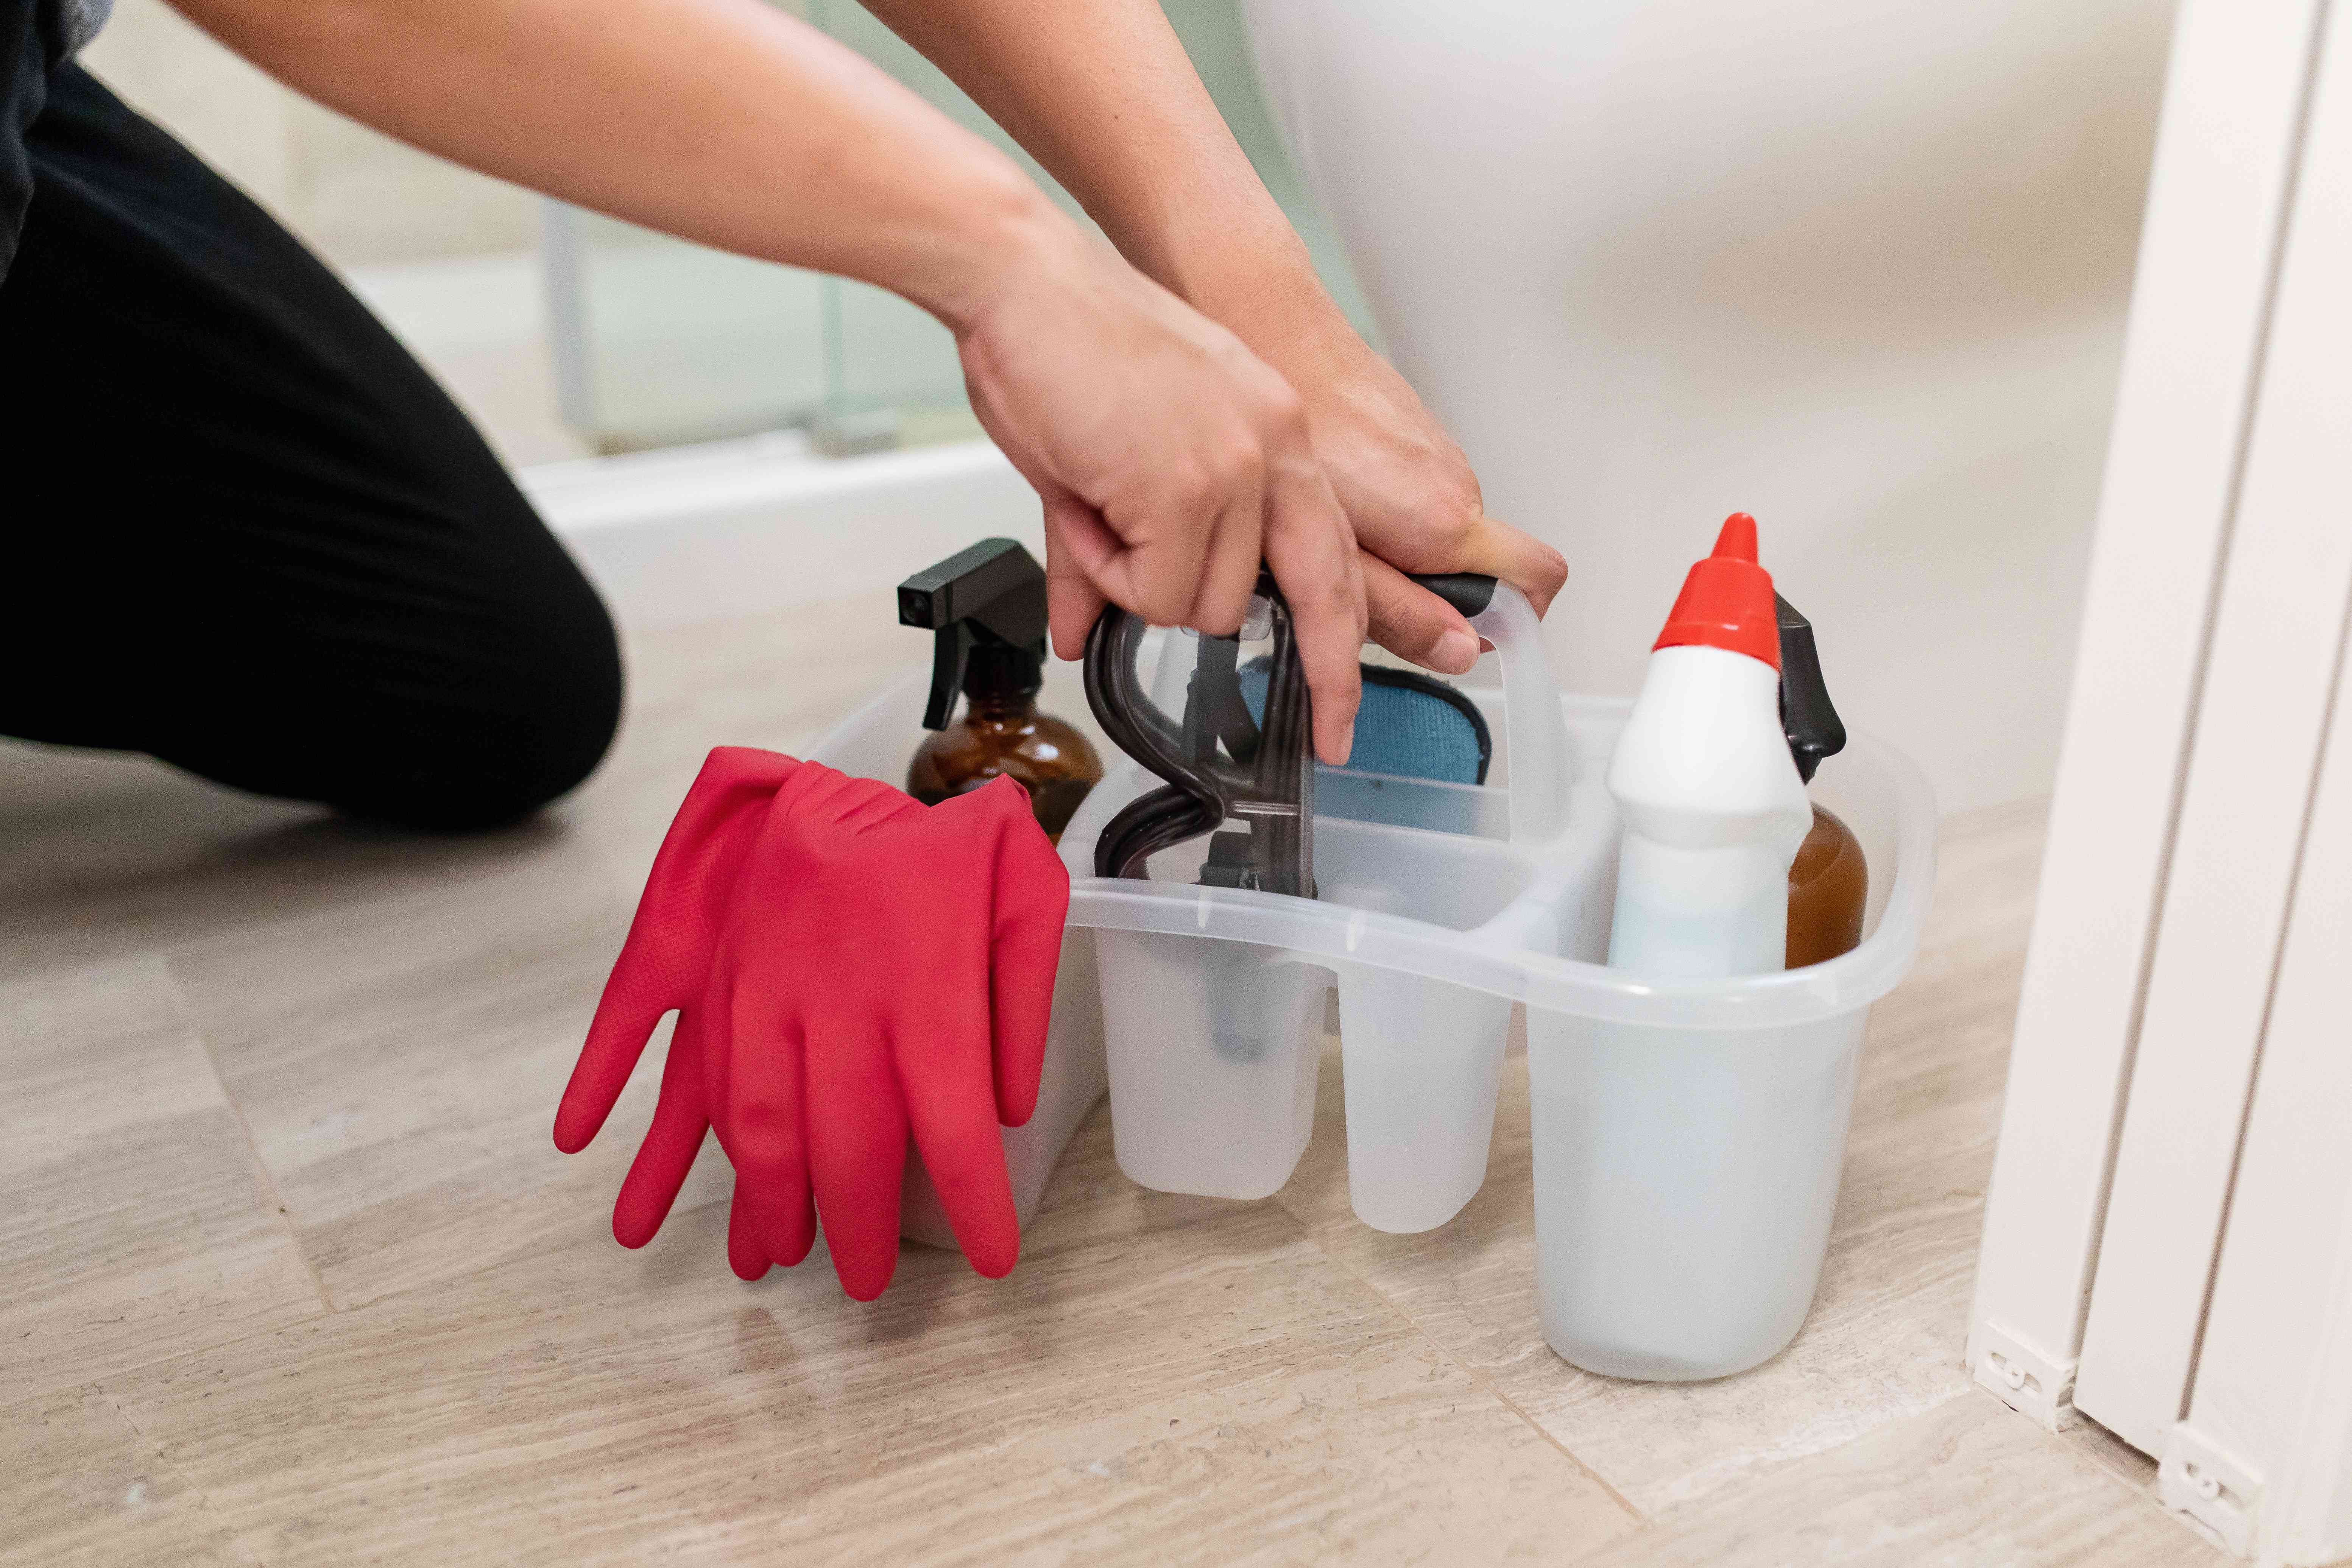 clean up and put tools away when finished